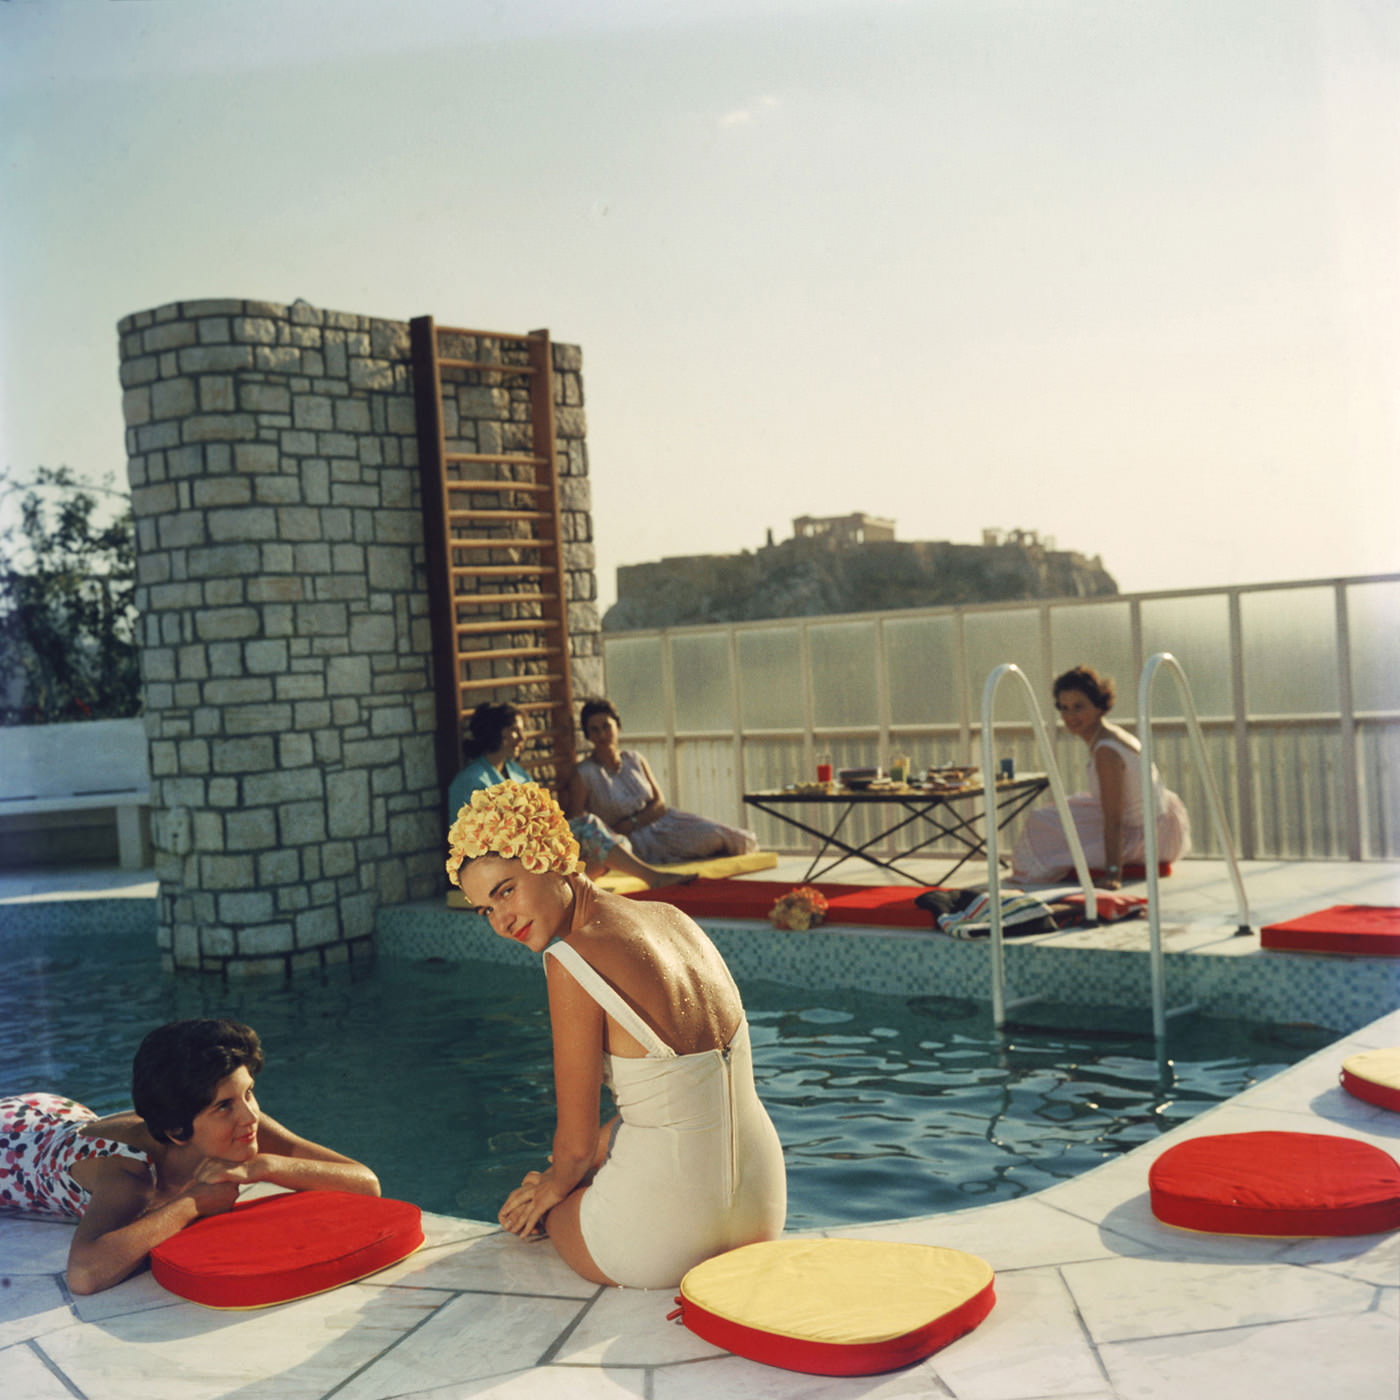 slim aarons_penthouse-the high life documentary-thechicflanesue